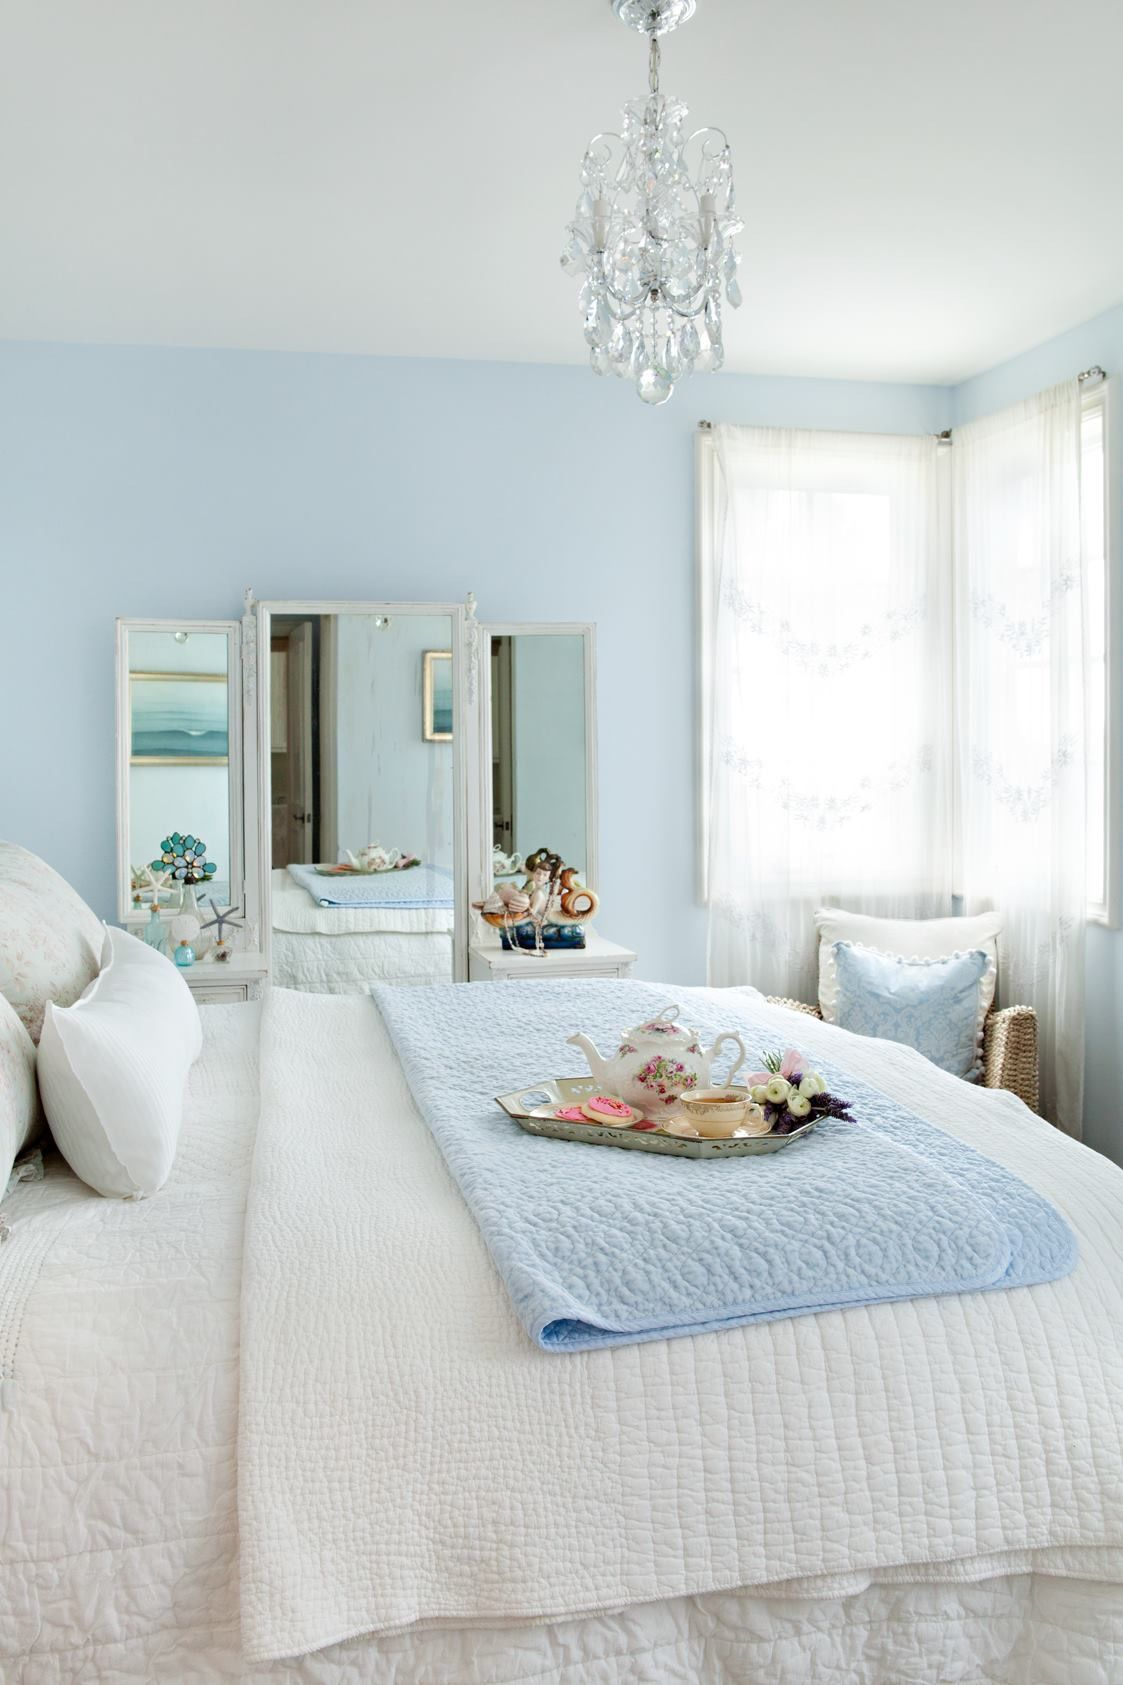 Pin By Vivian Rogers On D For Decoration Light Blue Bedroom Blue Bedroom Decor Elegant Bedroom Pastel blue bedroom designs